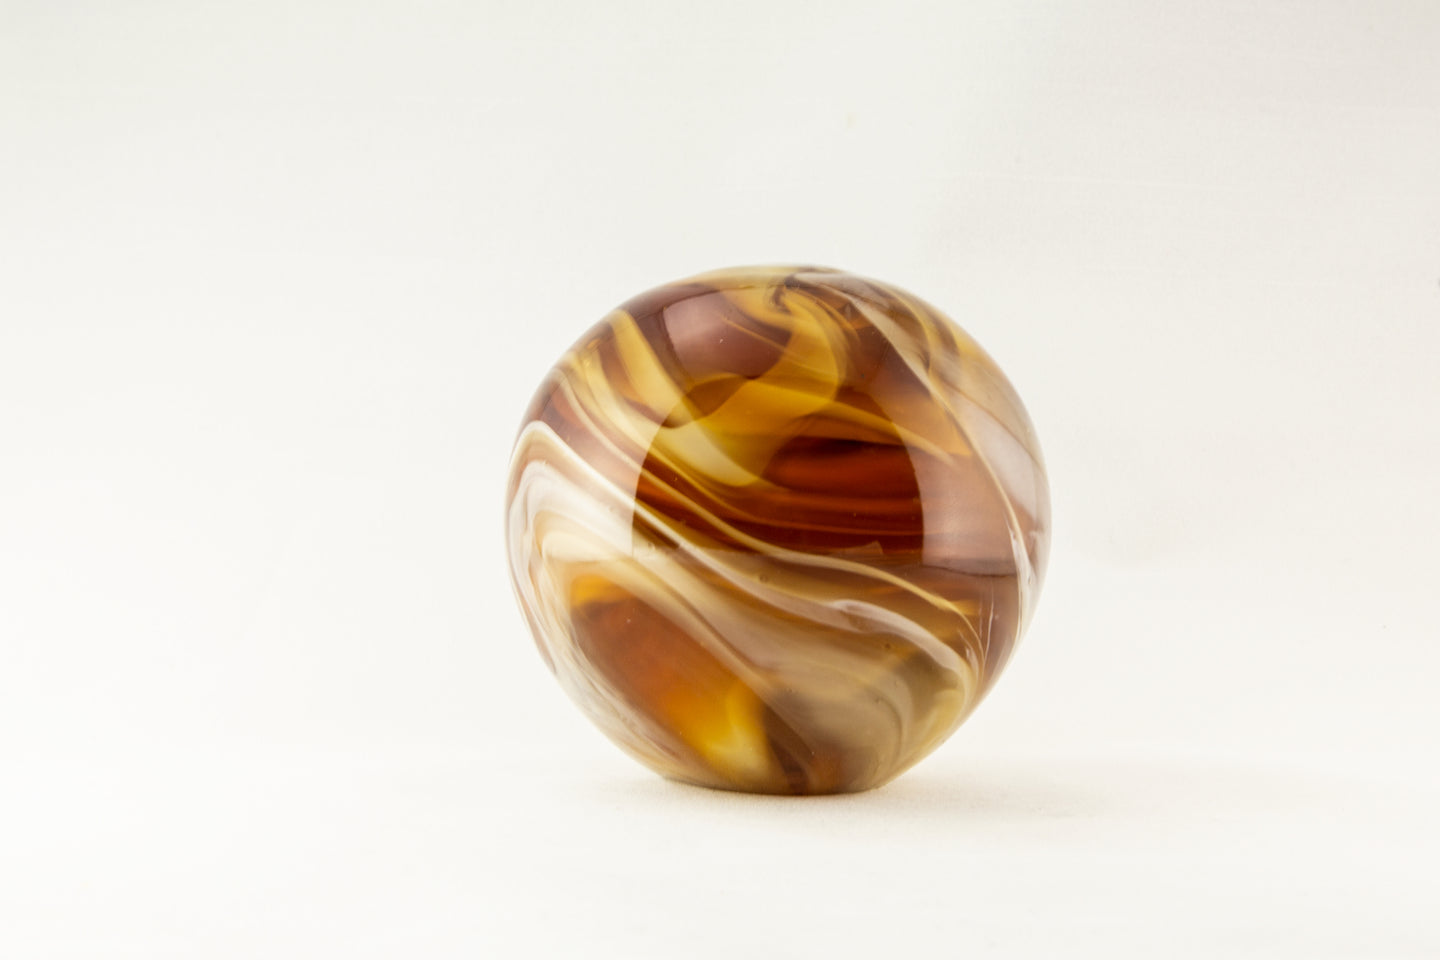 VINTAGE 4 INCH SPHERE AMBER SOLID GLASS MURANO-ESQUE SCULPTURE | BROWN/TAN/WHITE | PAPERWEIGHT | DECOR GIFT